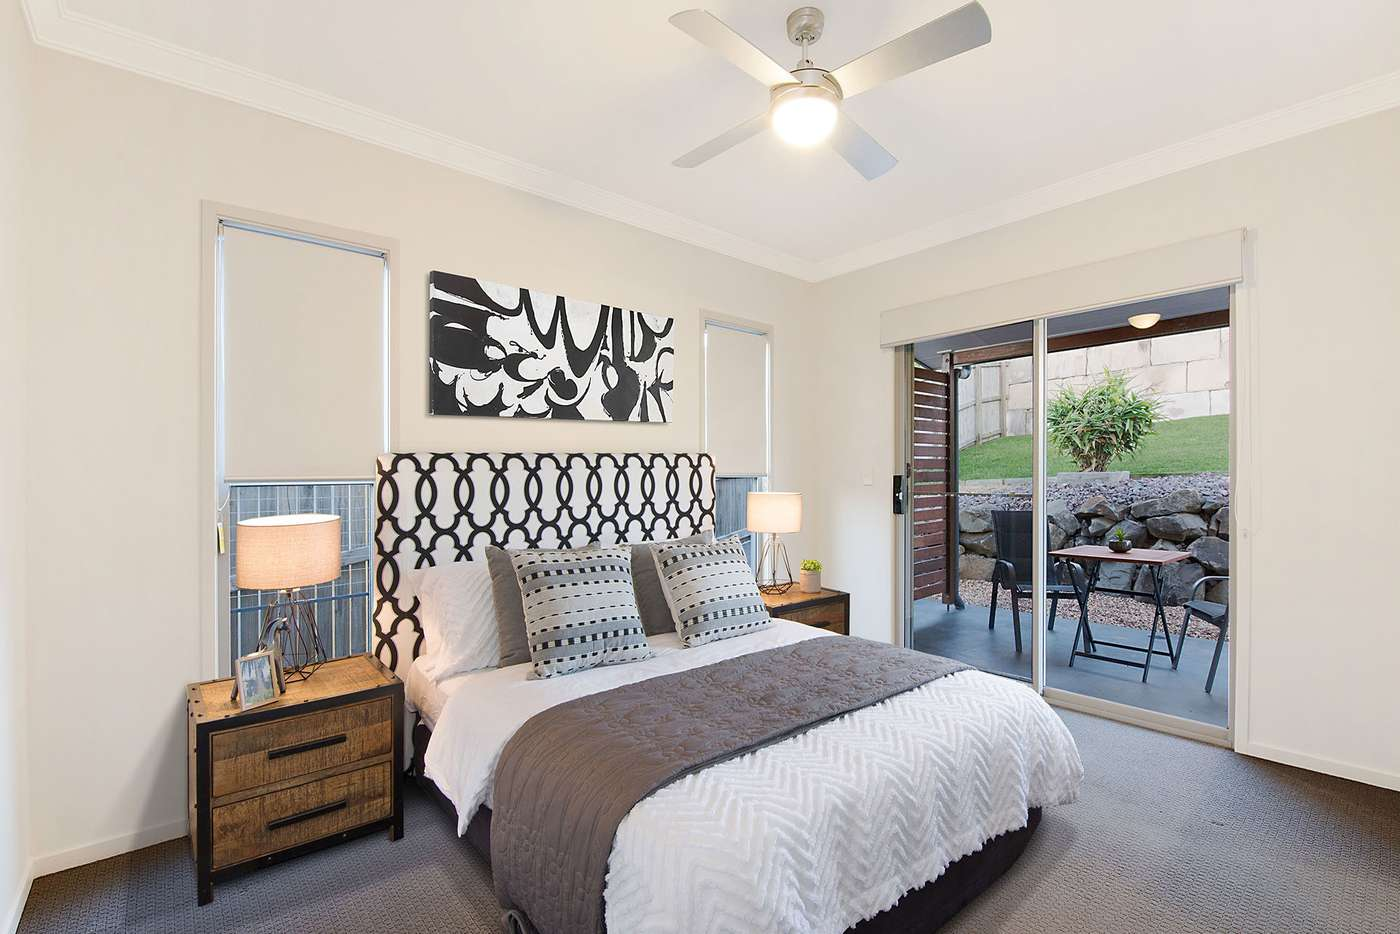 Fifth view of Homely house listing, 15 Tree View Crescent, Little Mountain QLD 4551